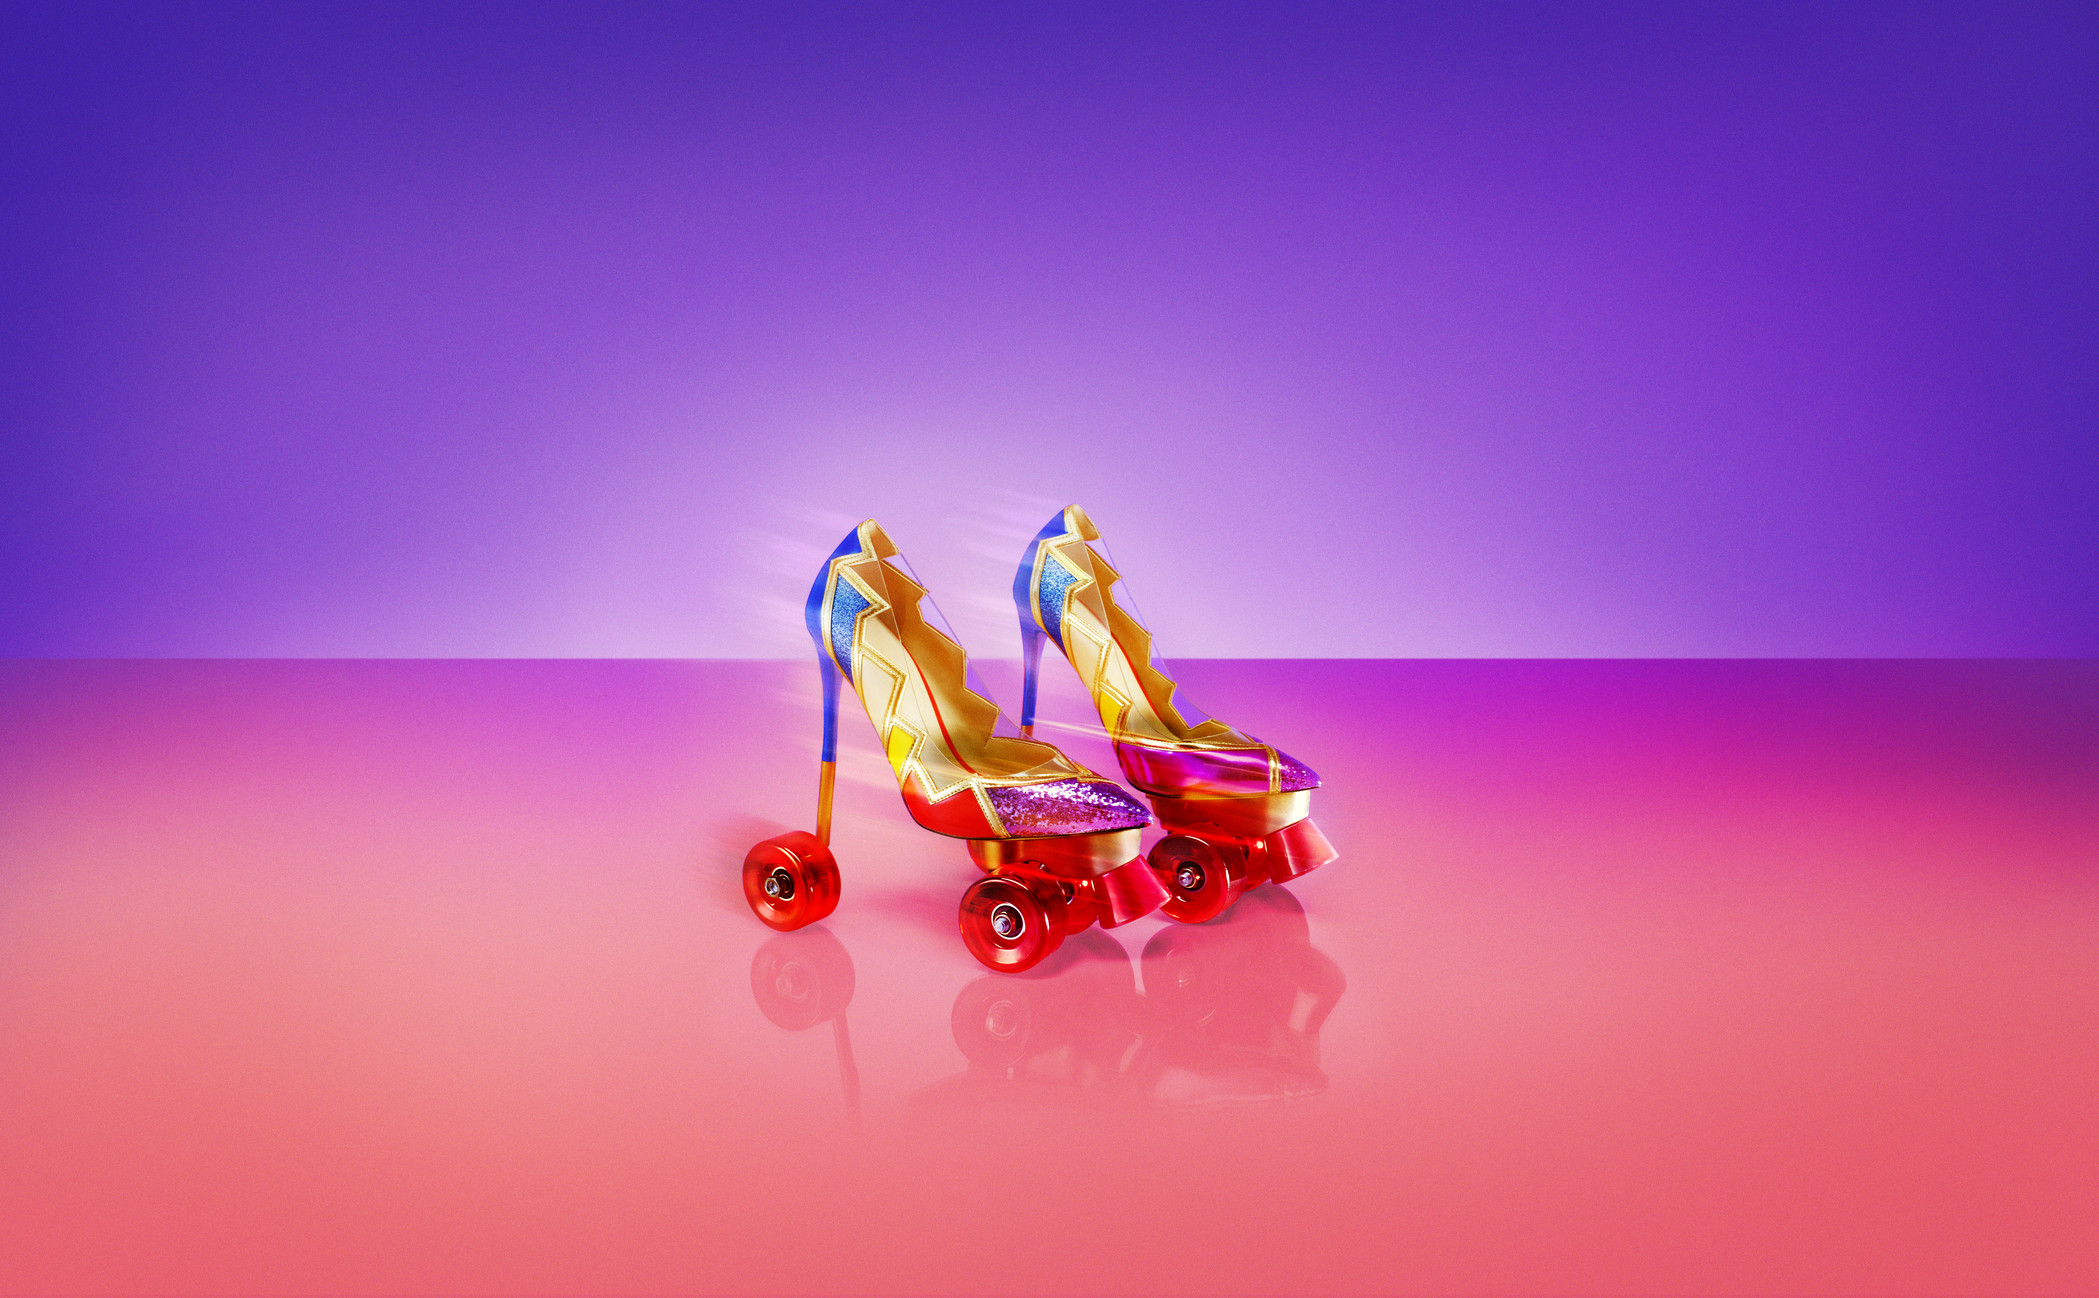 pair of black-and-gold-colored heeled roller skates